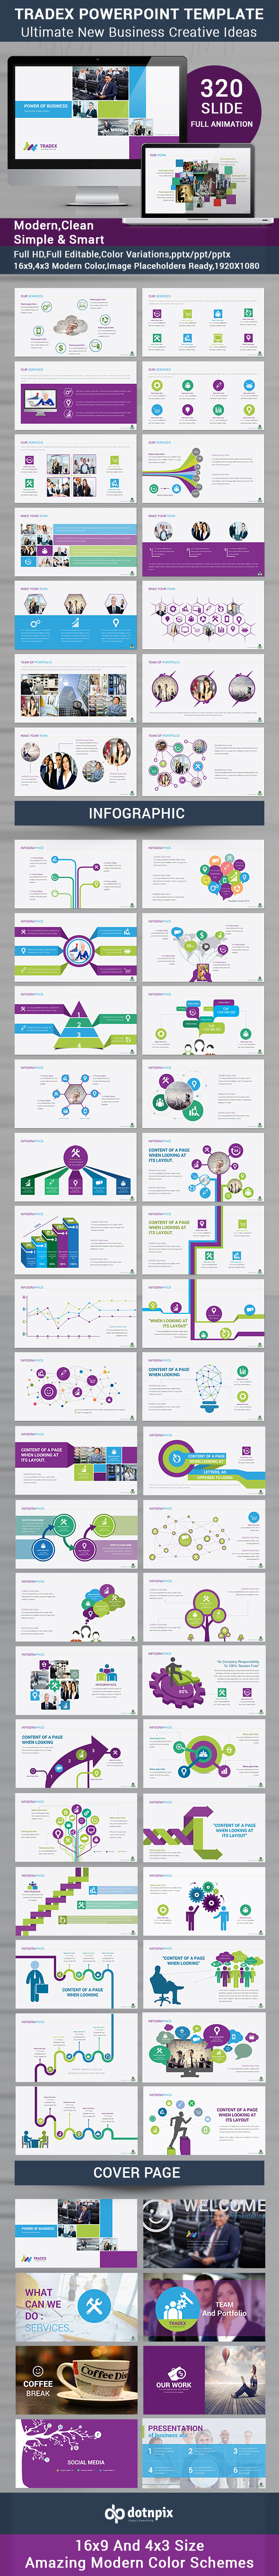 Tradex Powerpoint Template - Business PowerPoint Templates